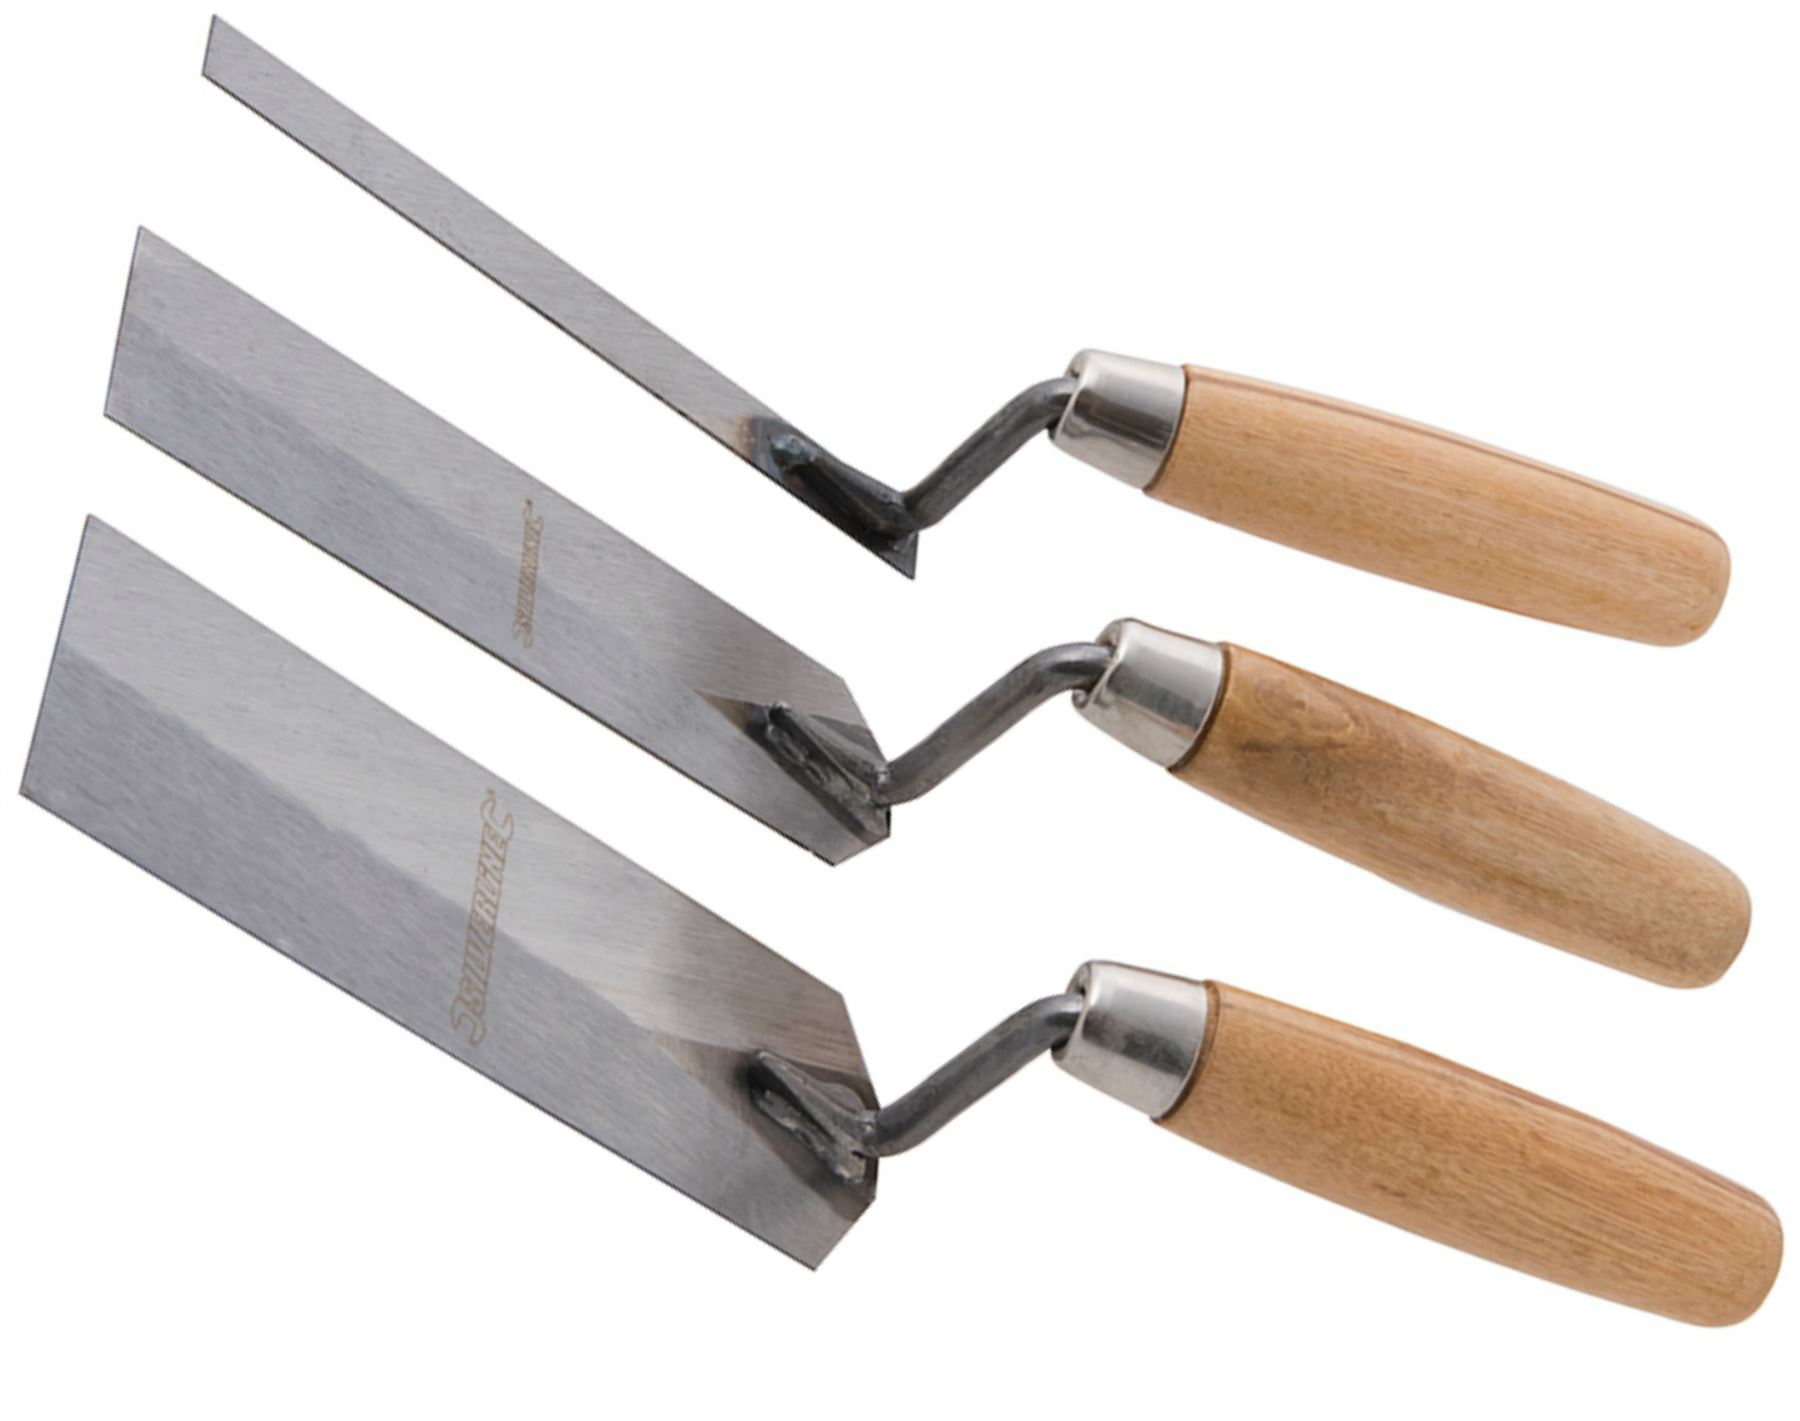 Silverline 3pc Margin Trowel Set Wooden Handle Plasterers Corner Plastering Tool